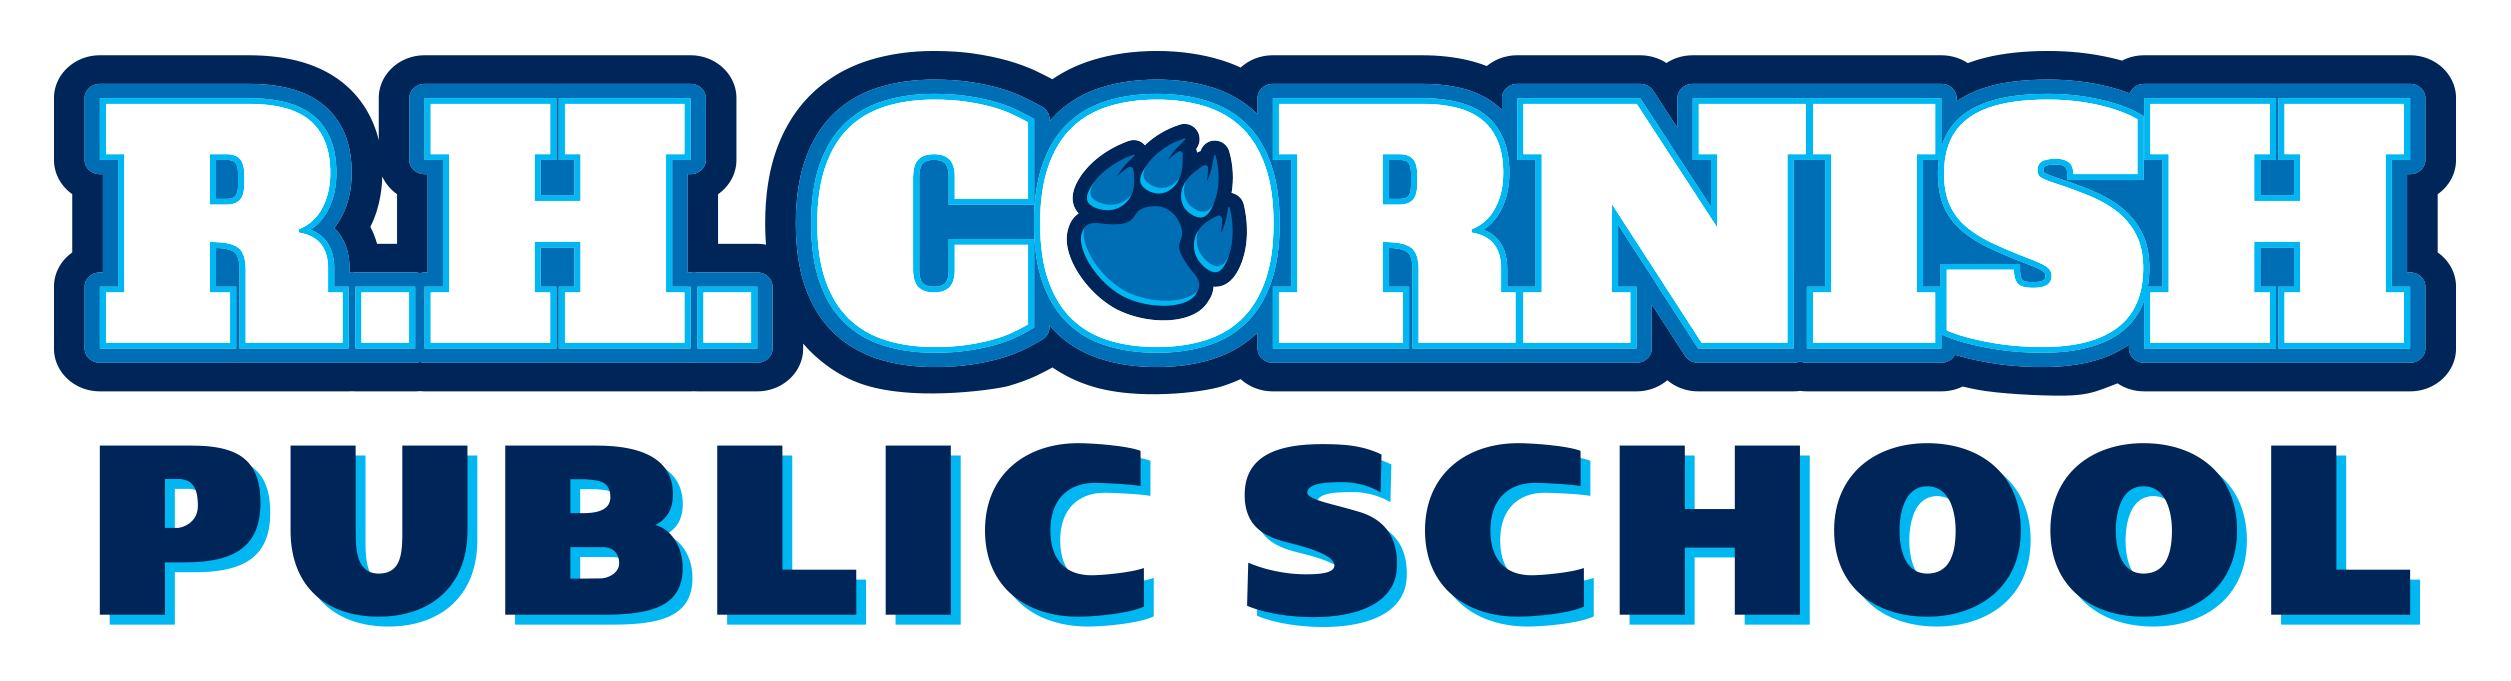 R.H. Cornish Public School logo